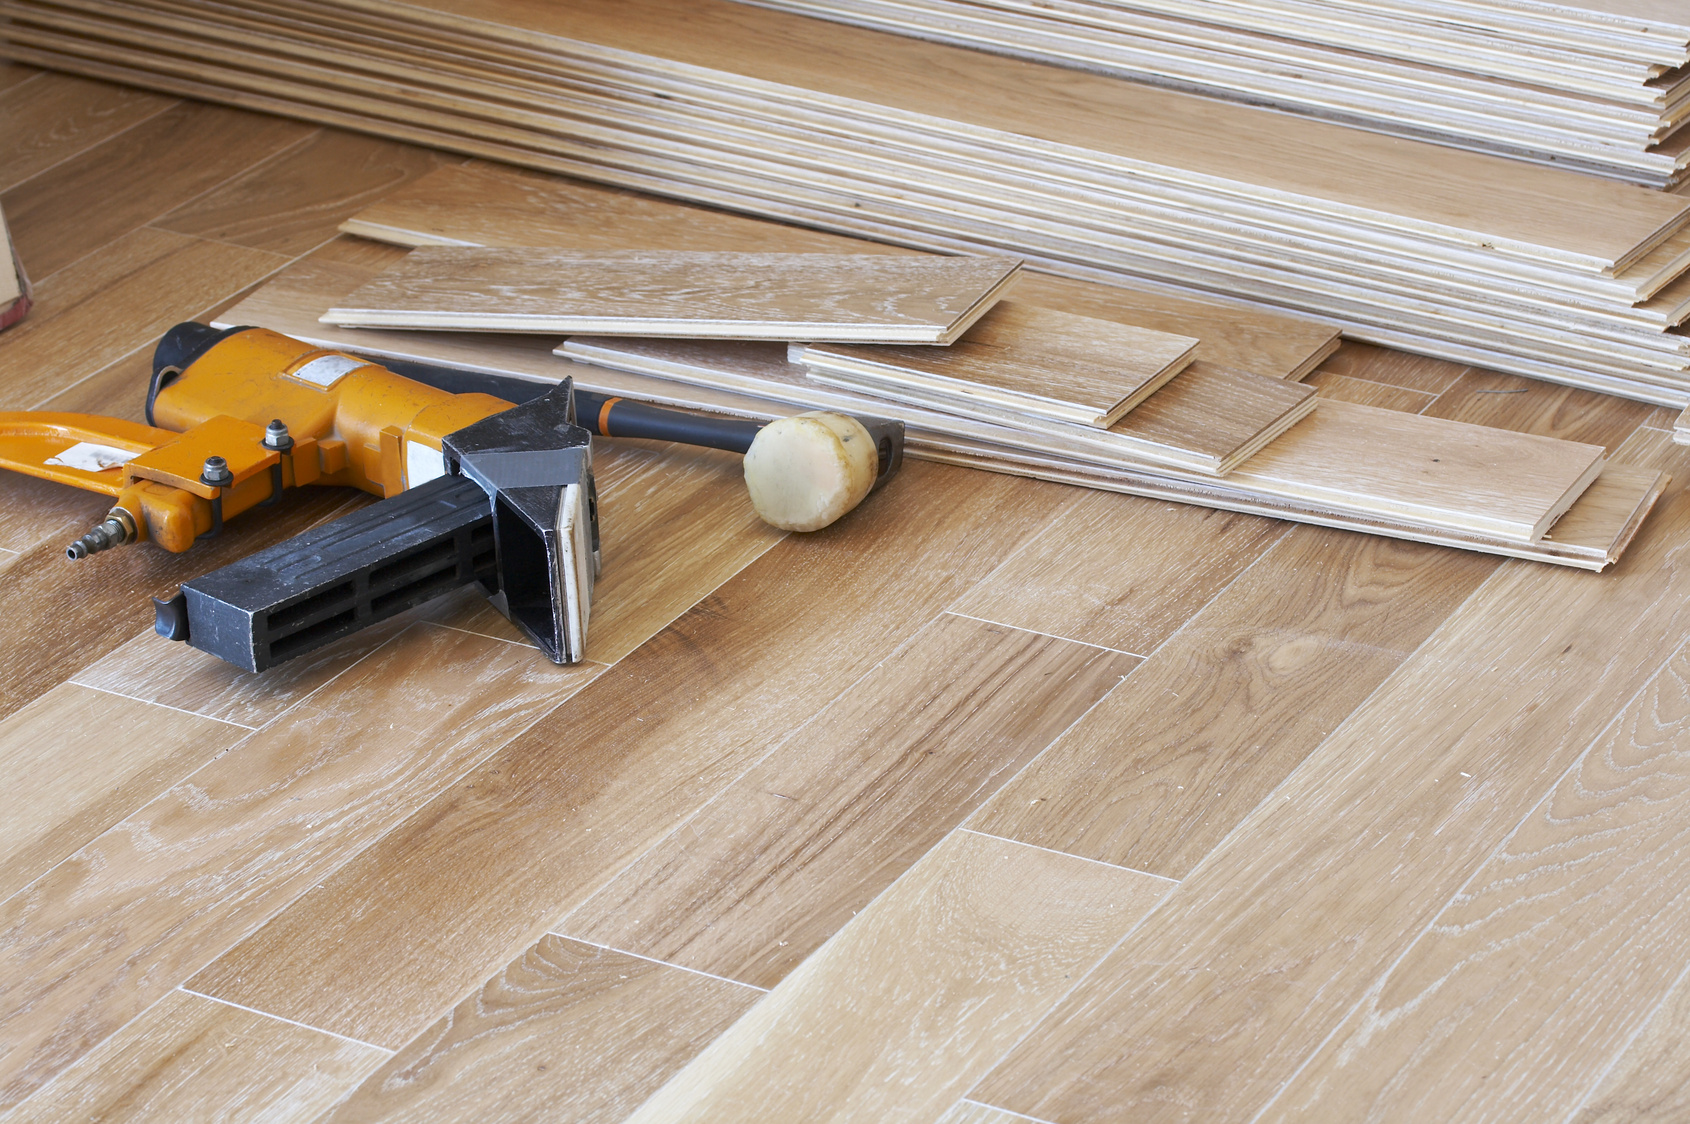 Flooring services in Portland by Carpet Mill Outlet